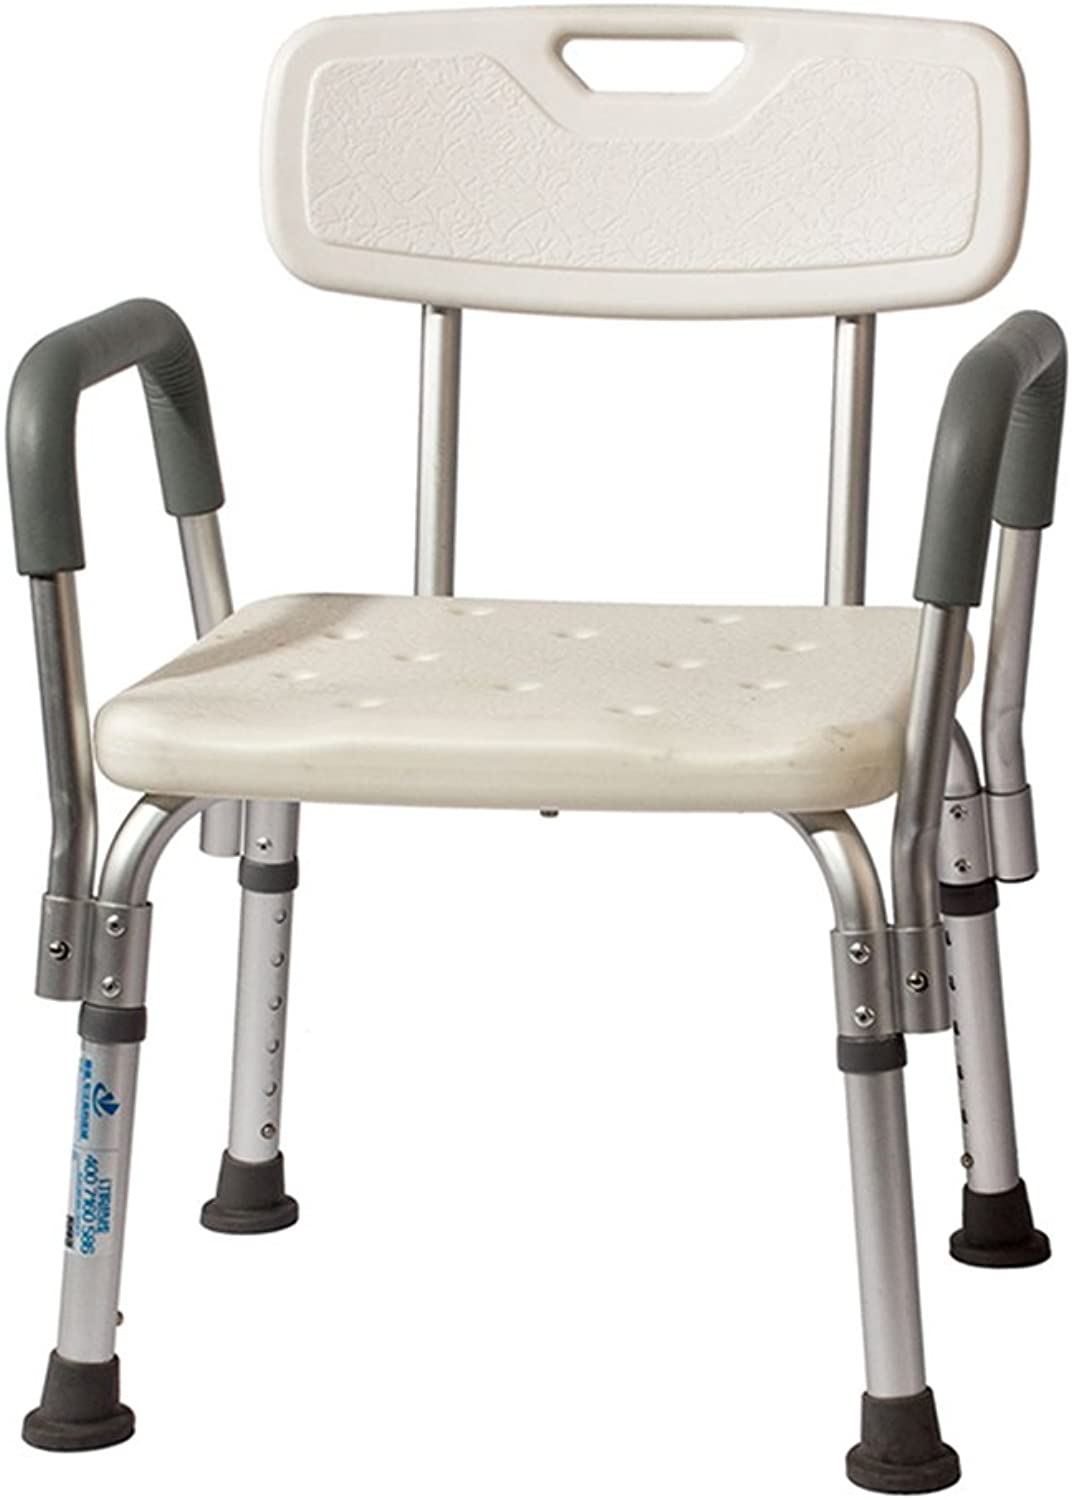 Shower Chair, The Elderly Shower Stool Pregnant Women Bath Chair Removable Aluminum Alloy Bath Chair Safety Portable